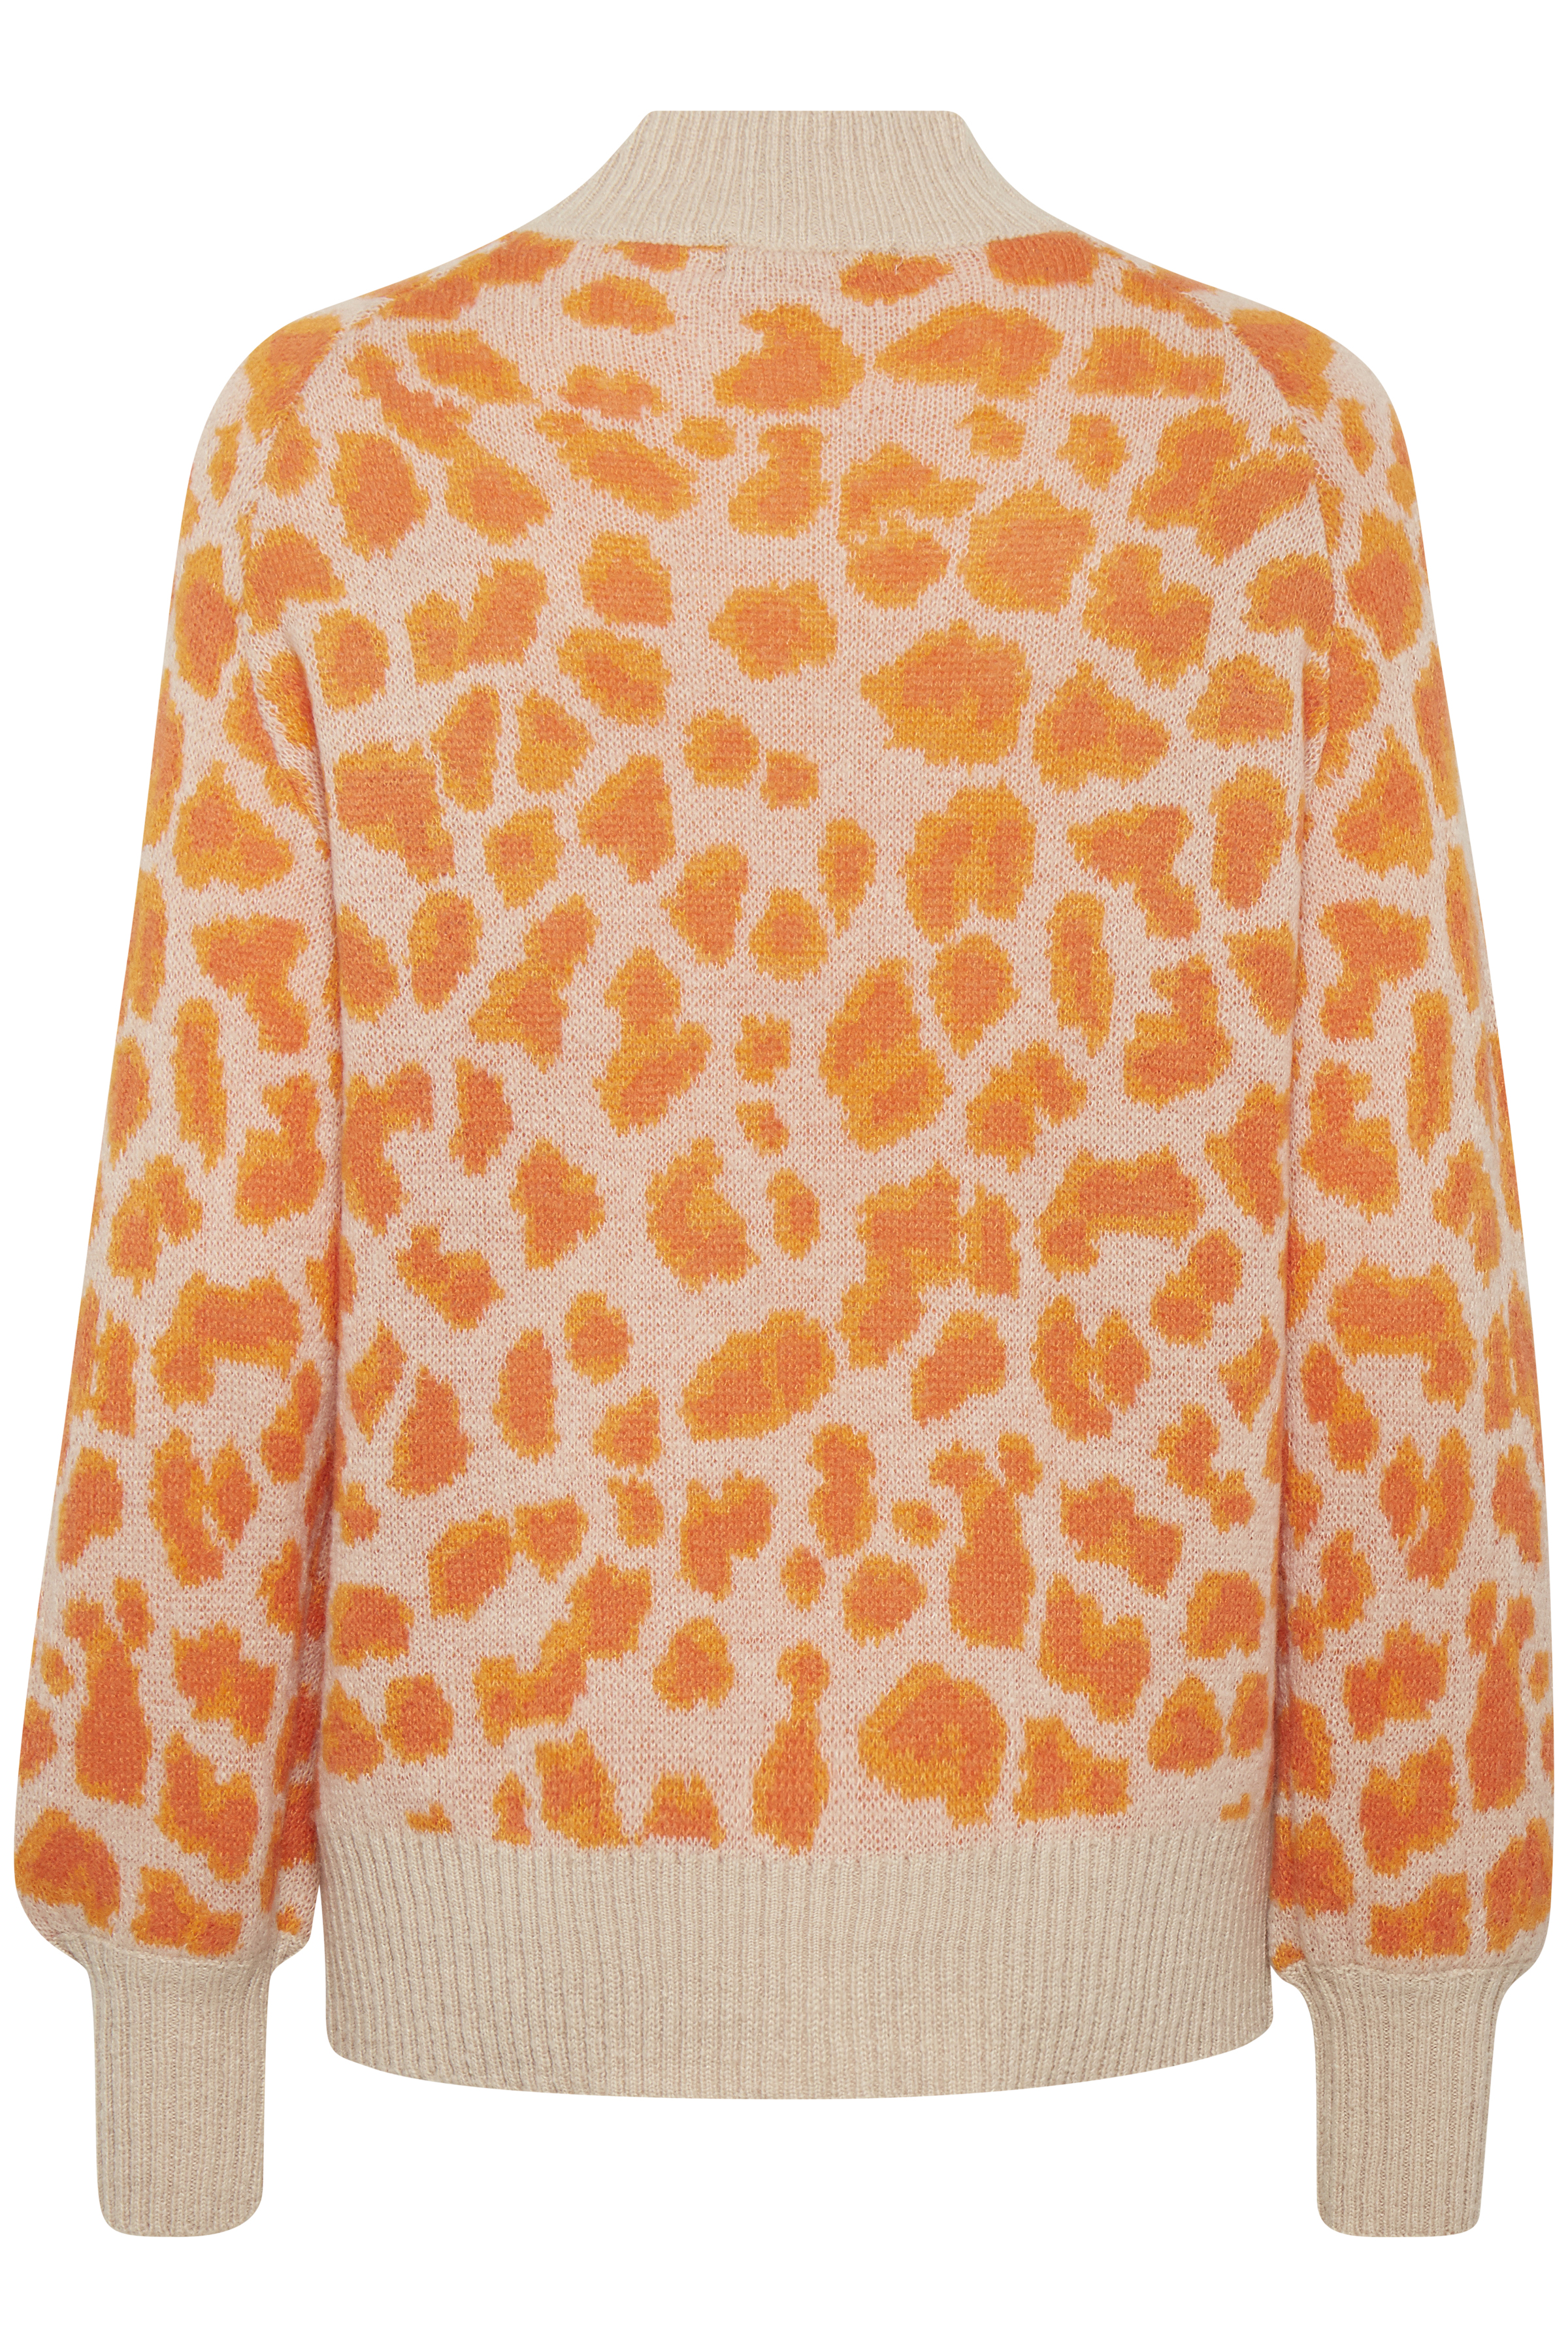 Sun Orange Combi Knitted pullover from b.young – Buy Sun Orange Combi Knitted pullover from size XS-XXL here